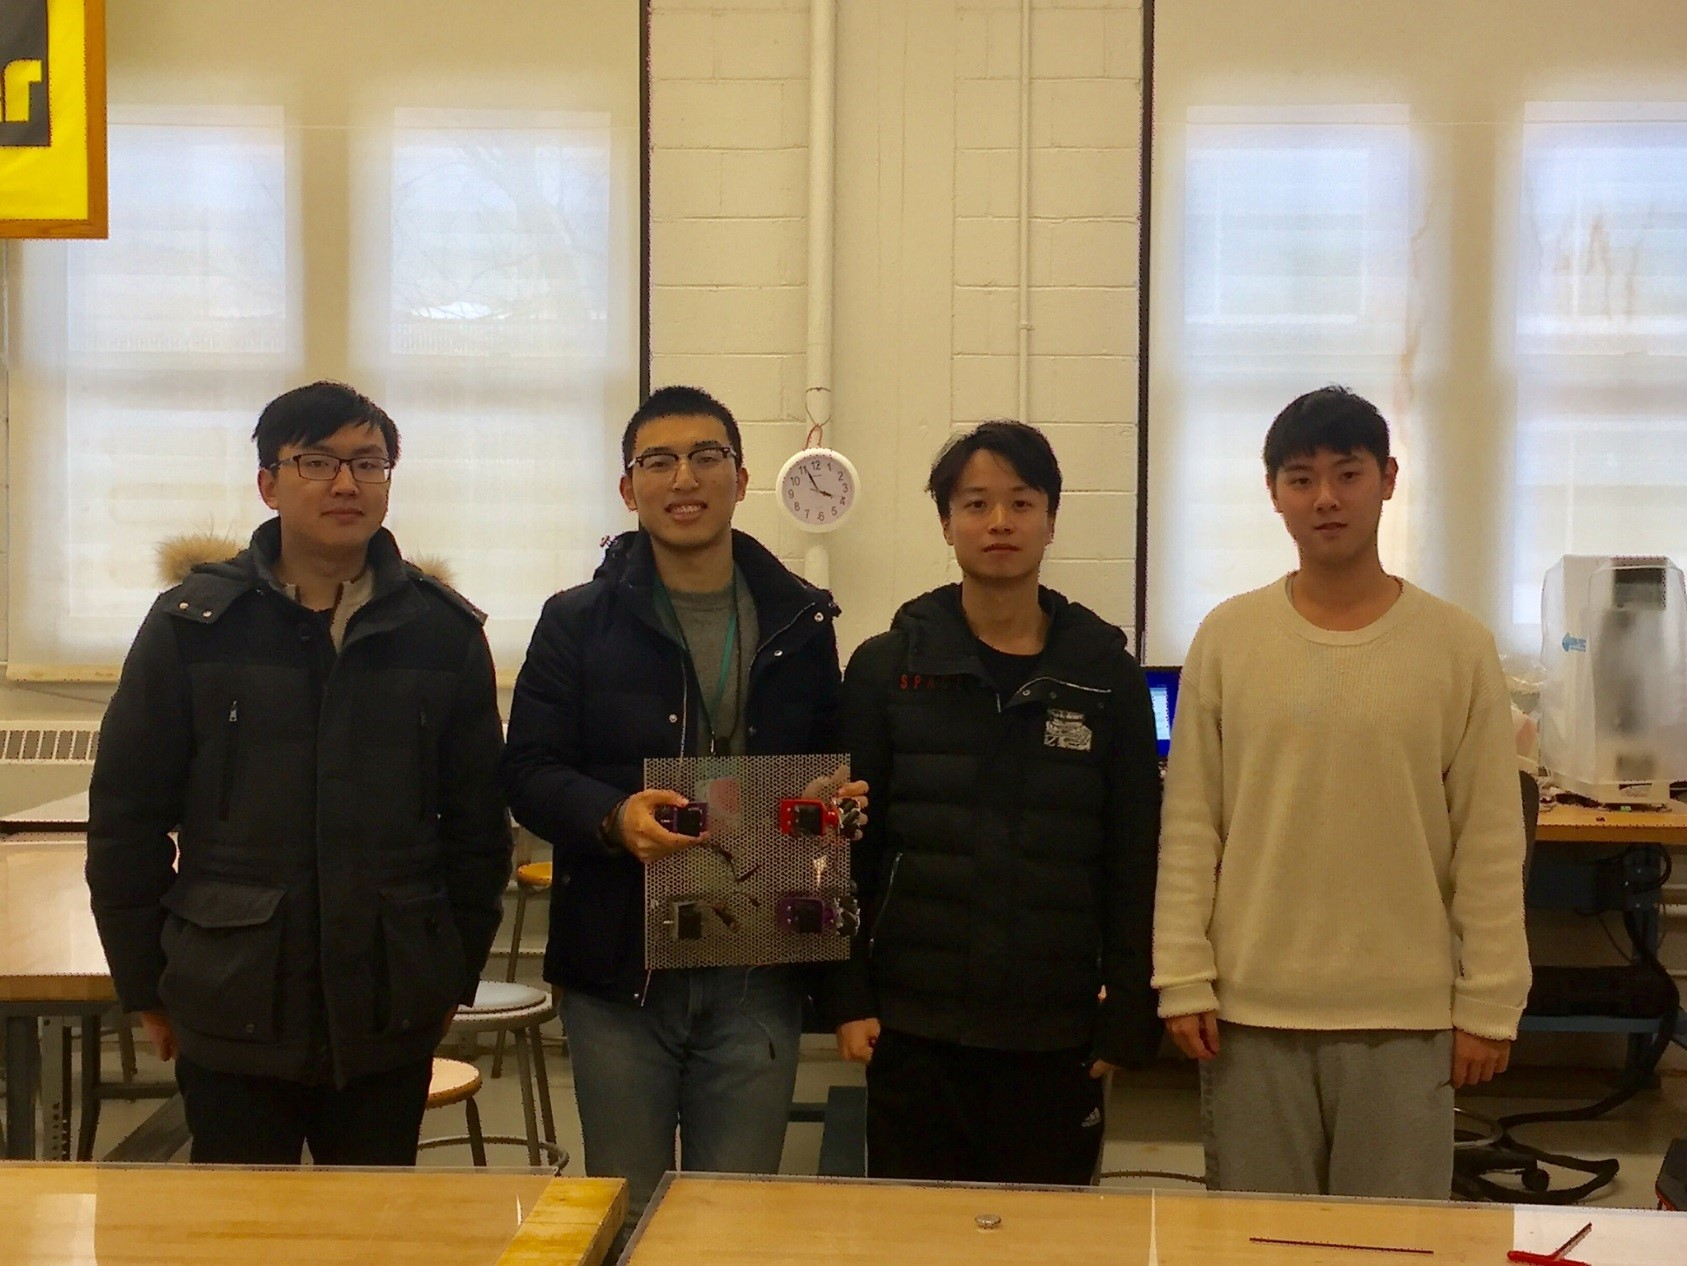 ABE ASABE Robotics Contest Team